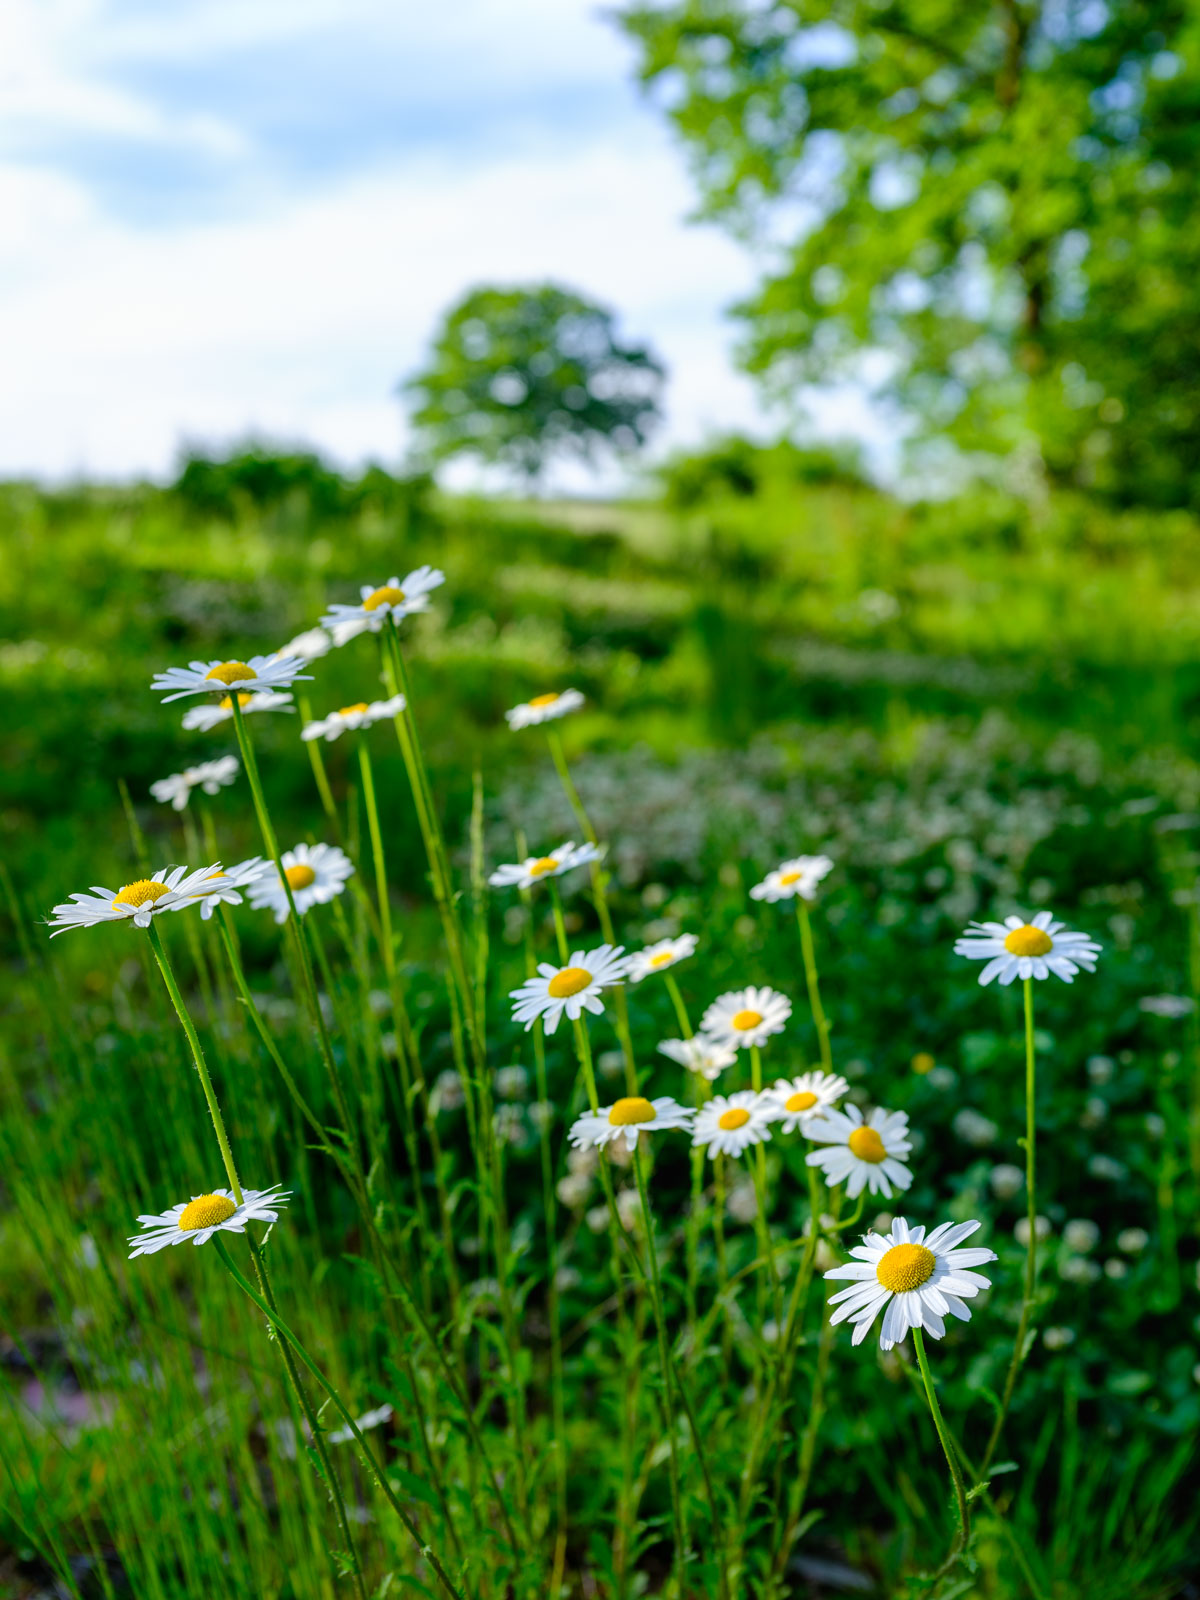 Ox-eye daisies (Leucanthemum vulgare) in a field near Bielefeld-Theesen (Germany).